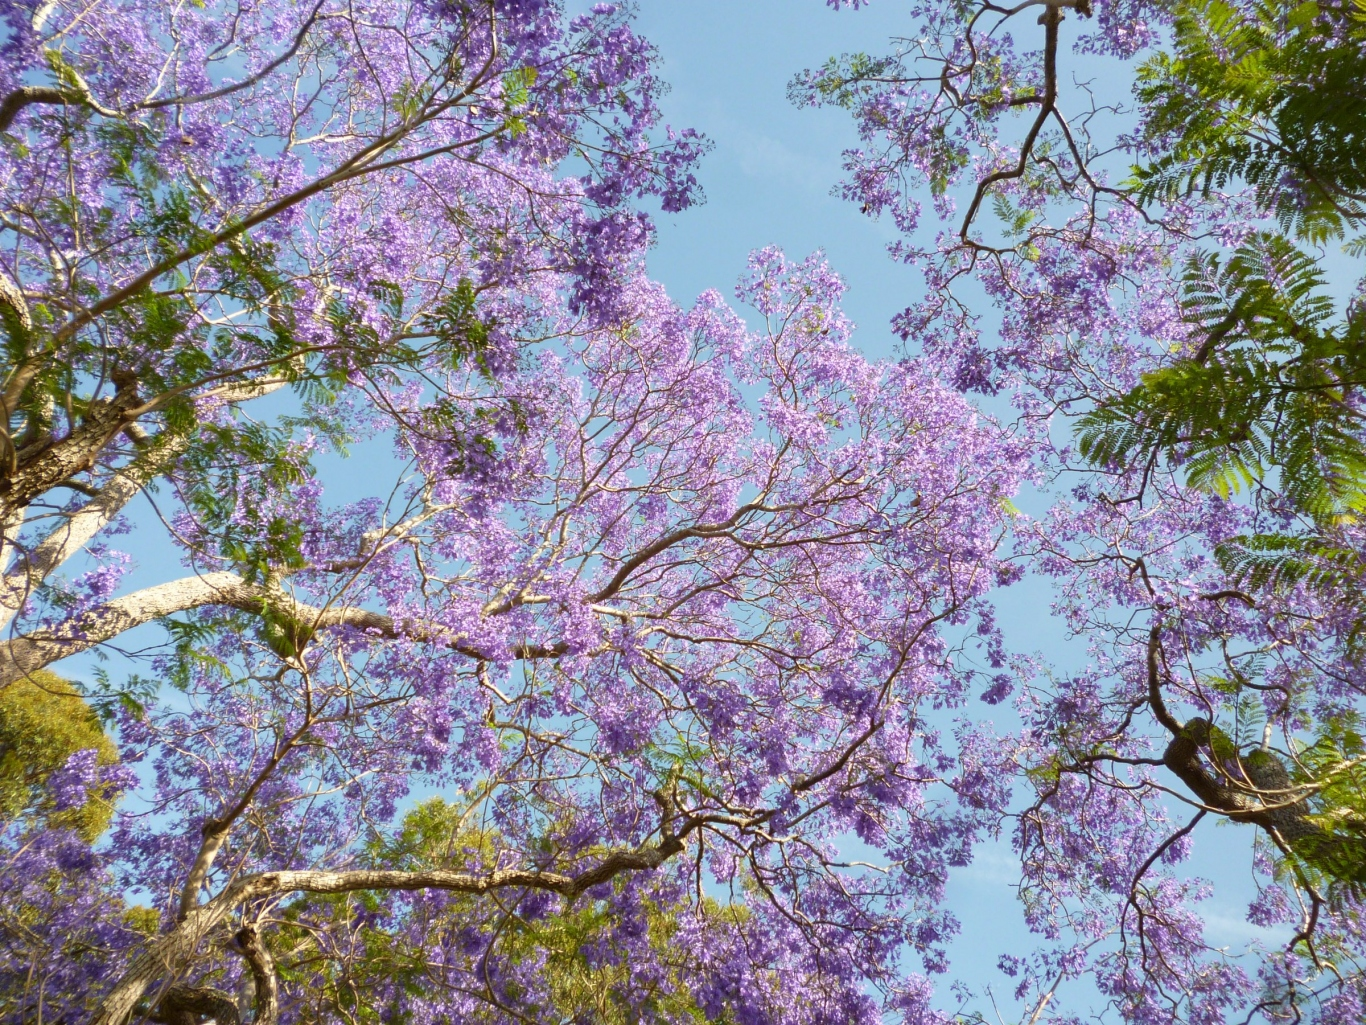 Photograph of a canopy of jacaranda